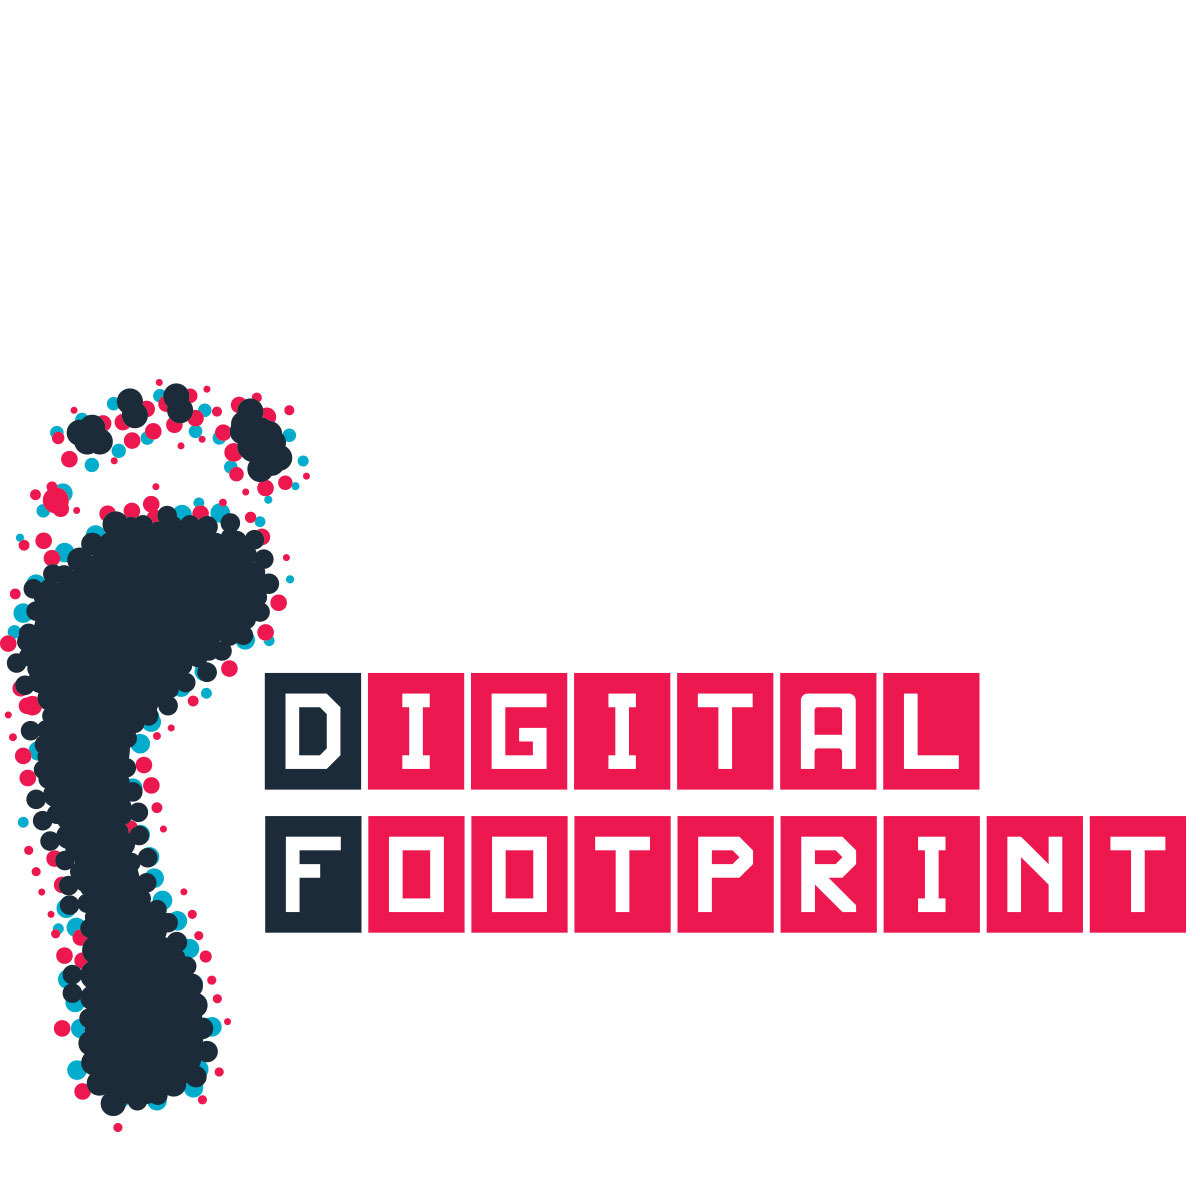 Digital Footprint course image